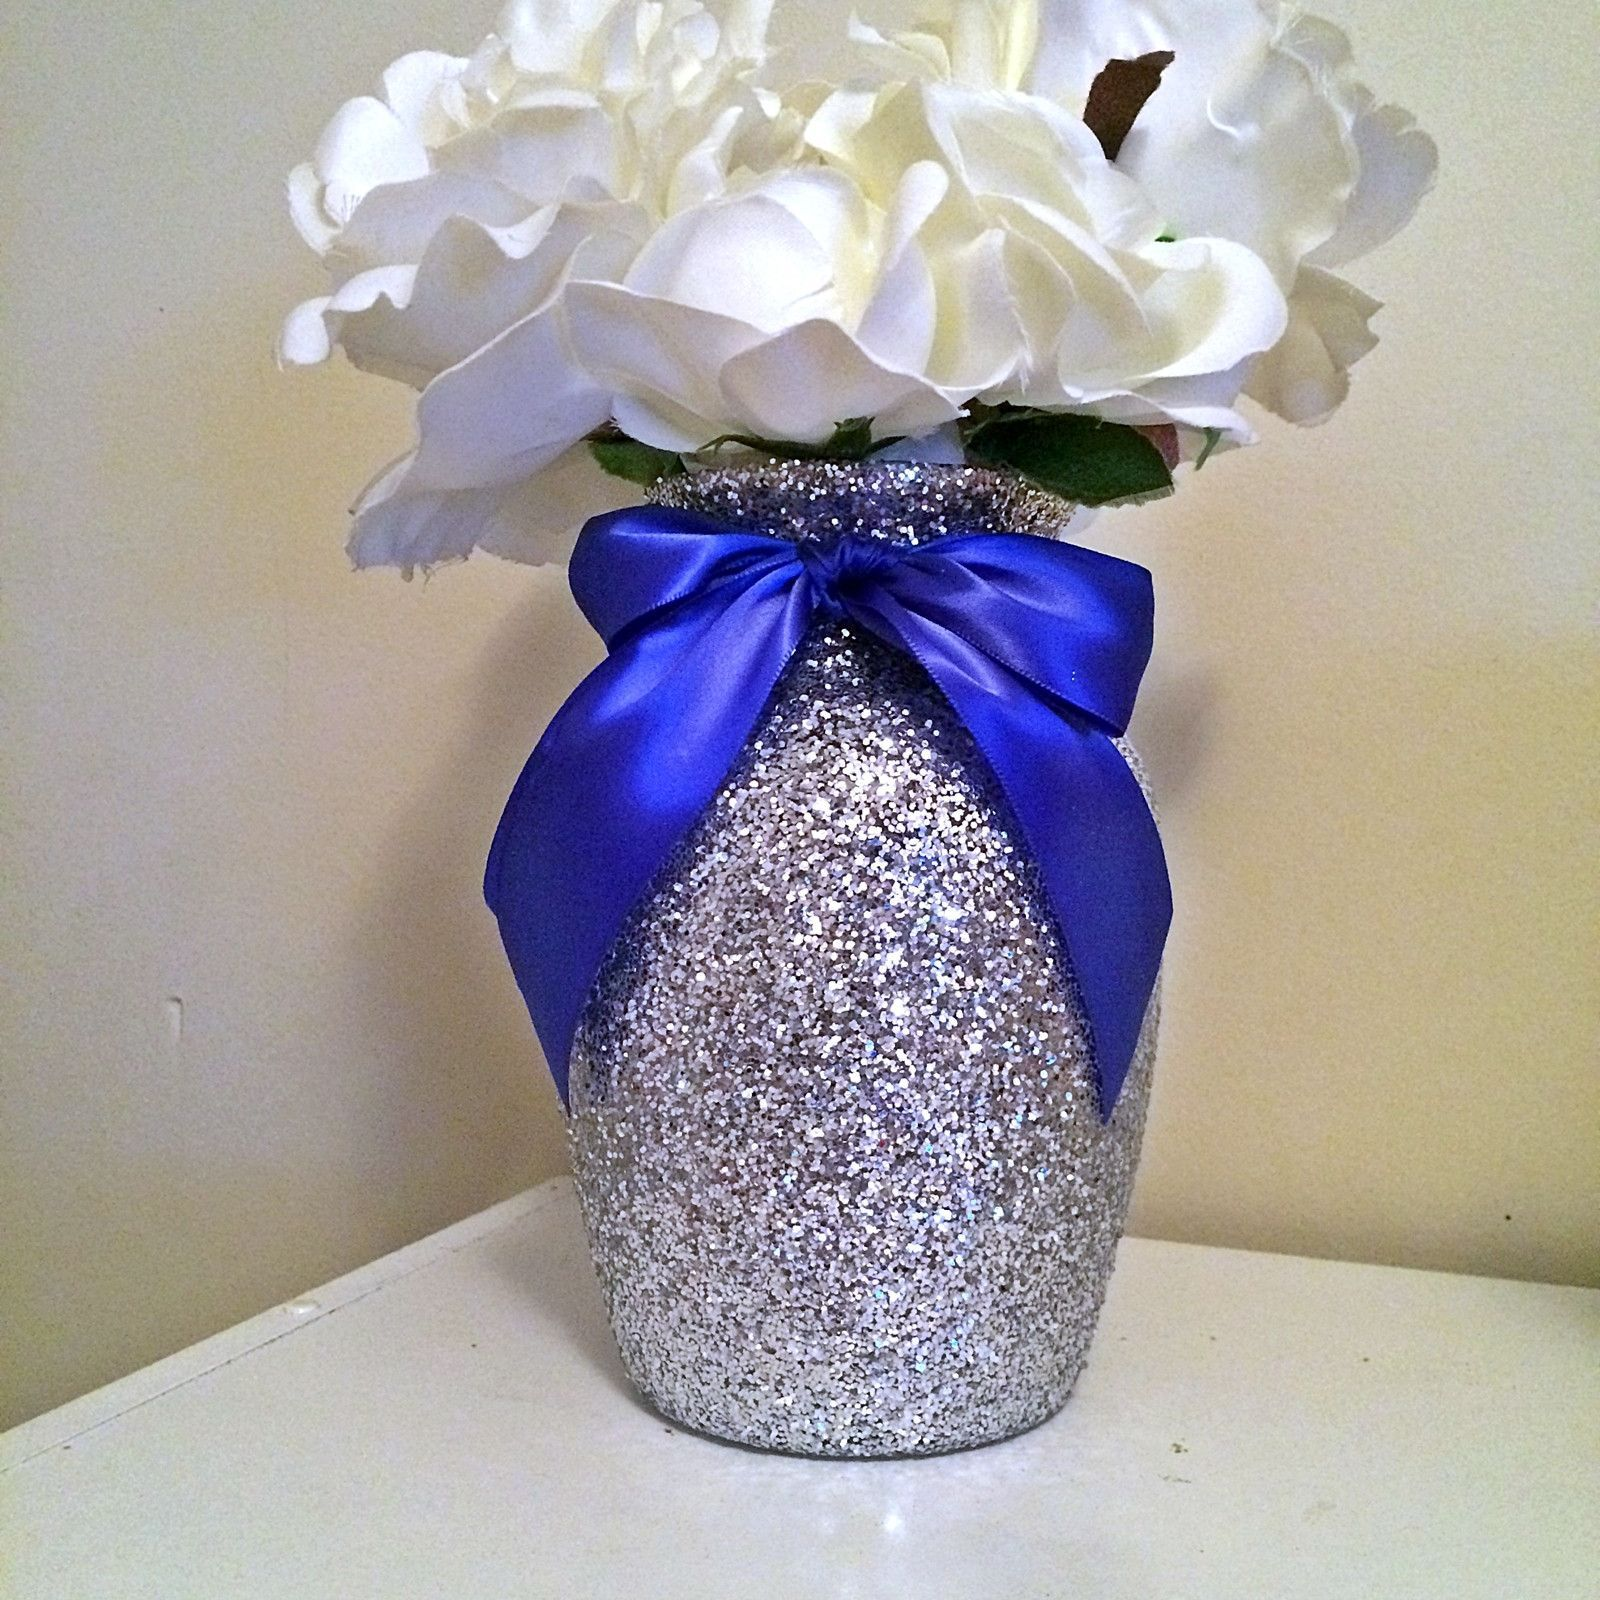 Silver And Royal Blue Vases For Baby Shower Bridal Shower Birthday